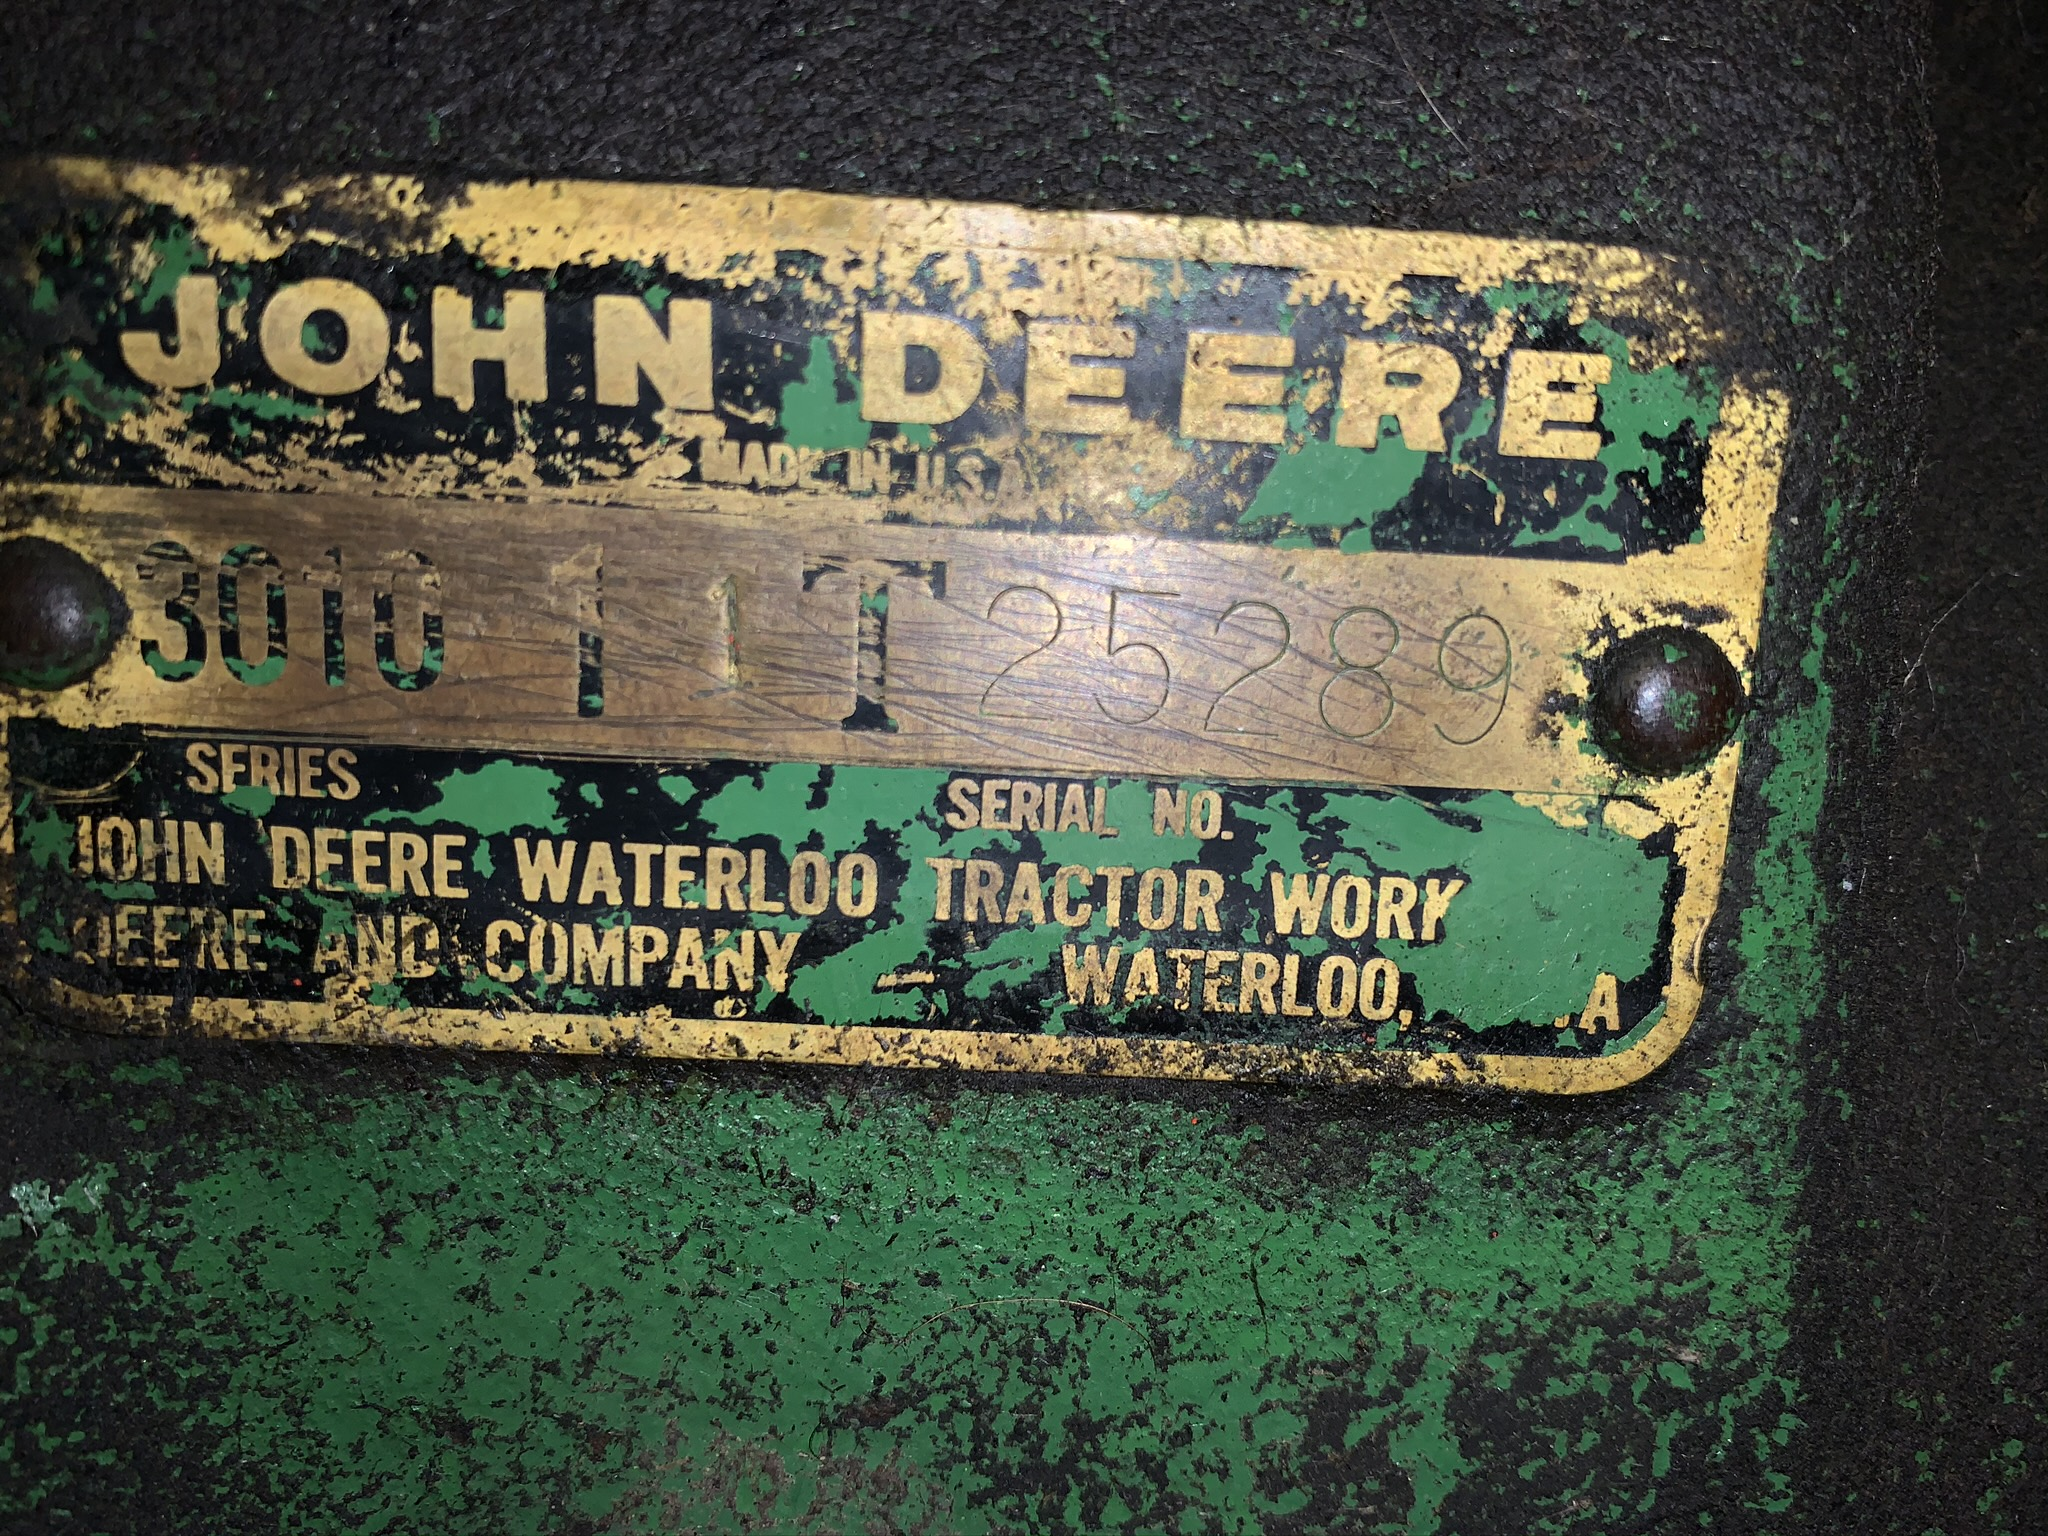 1962 JD 3010 GAS, Synchro Range Transmission, Single Hydraulic Remote - Image 2 of 4